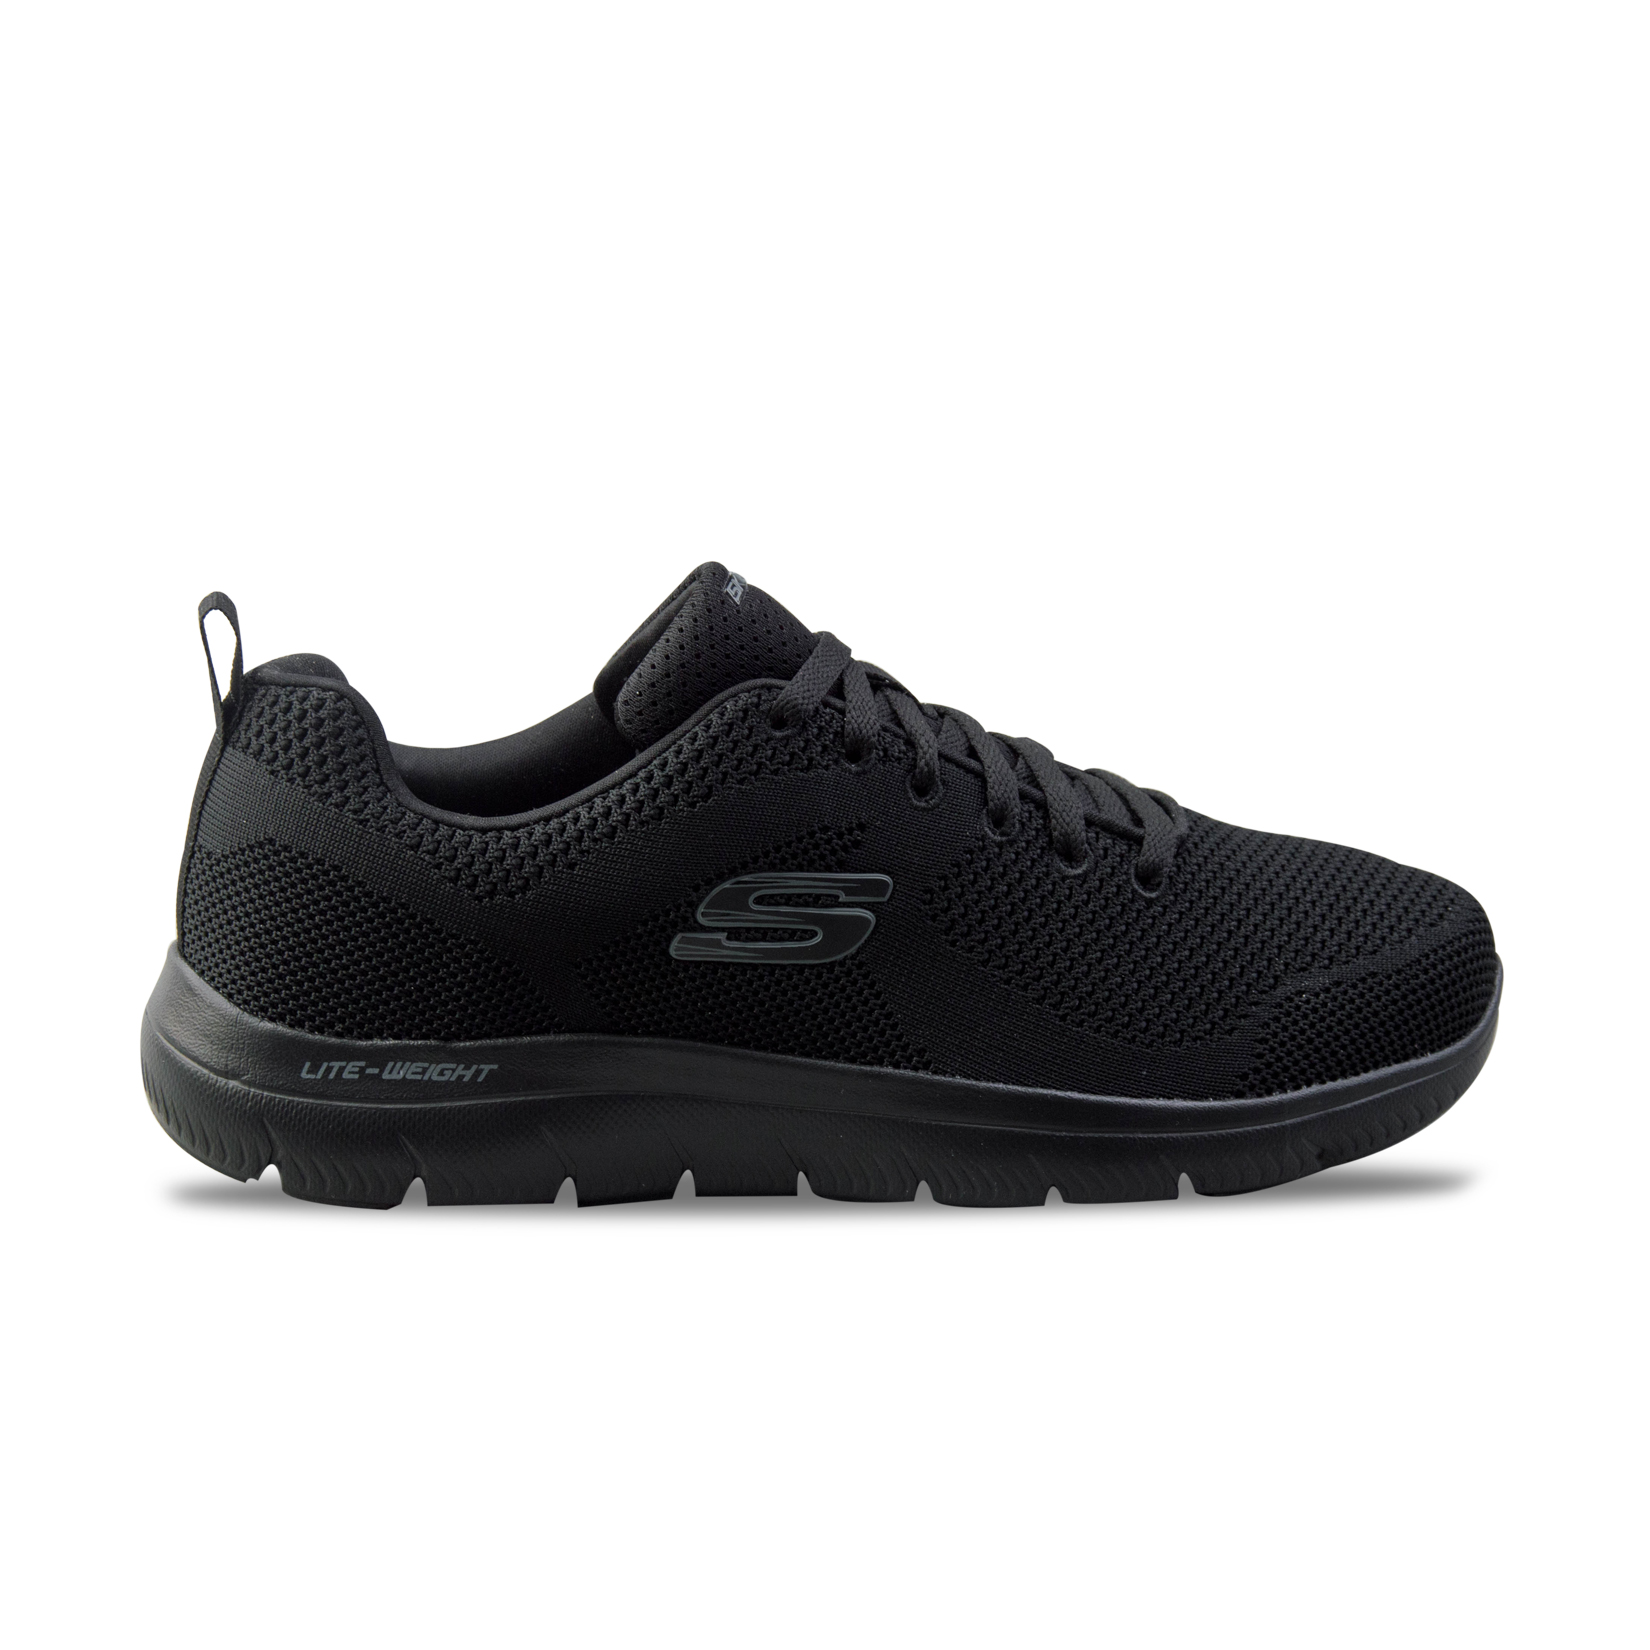 Skechers Summits - Brisbane Black